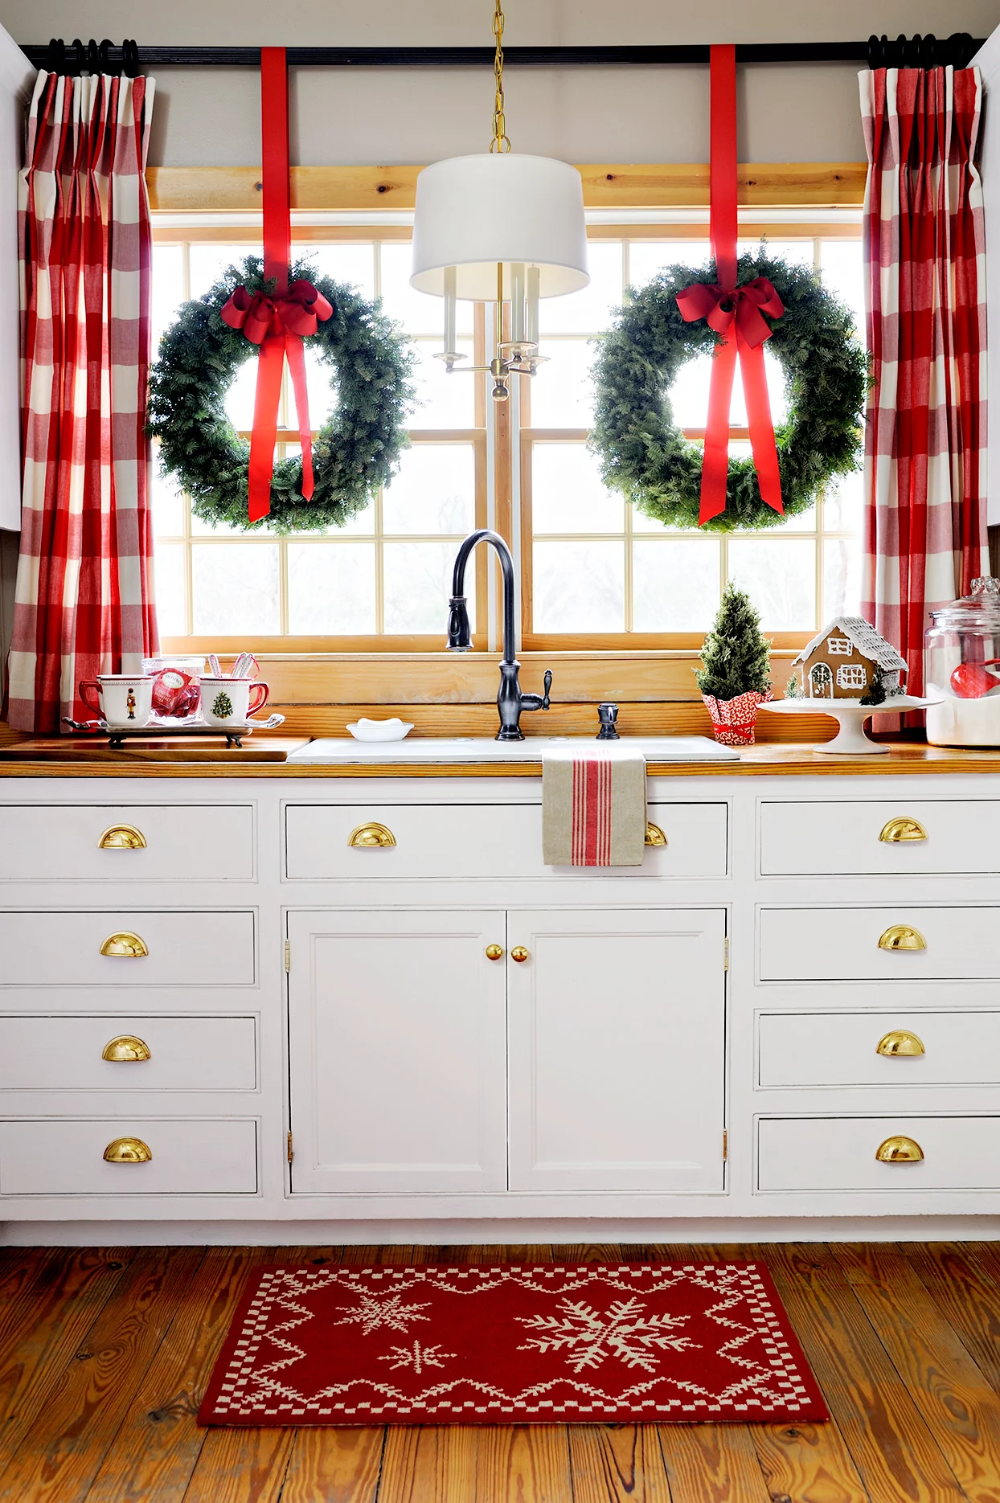 Putting Up Christmas Decorations Early Can Actually Make You Happier in 2020 | Christmas kitchen ...